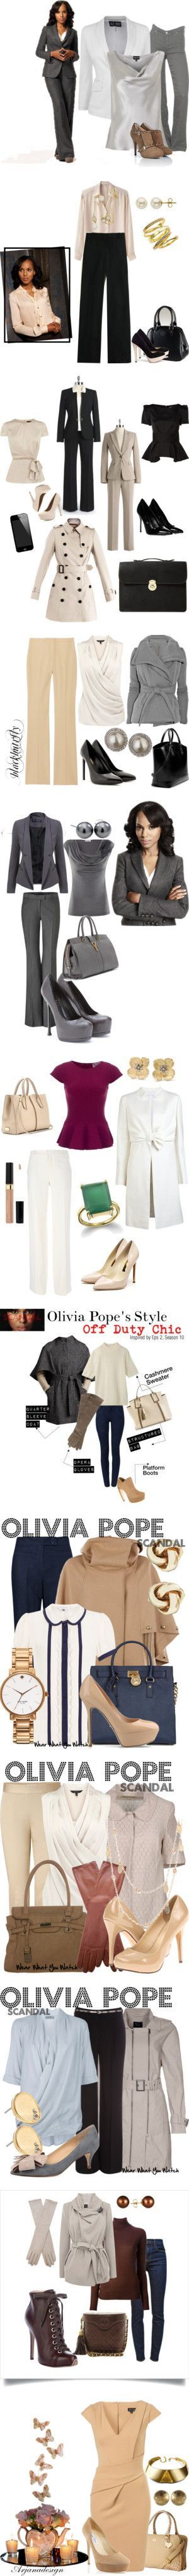 """""""olivia pope"""" by eligdr ❤ liked on Polyvore:"""